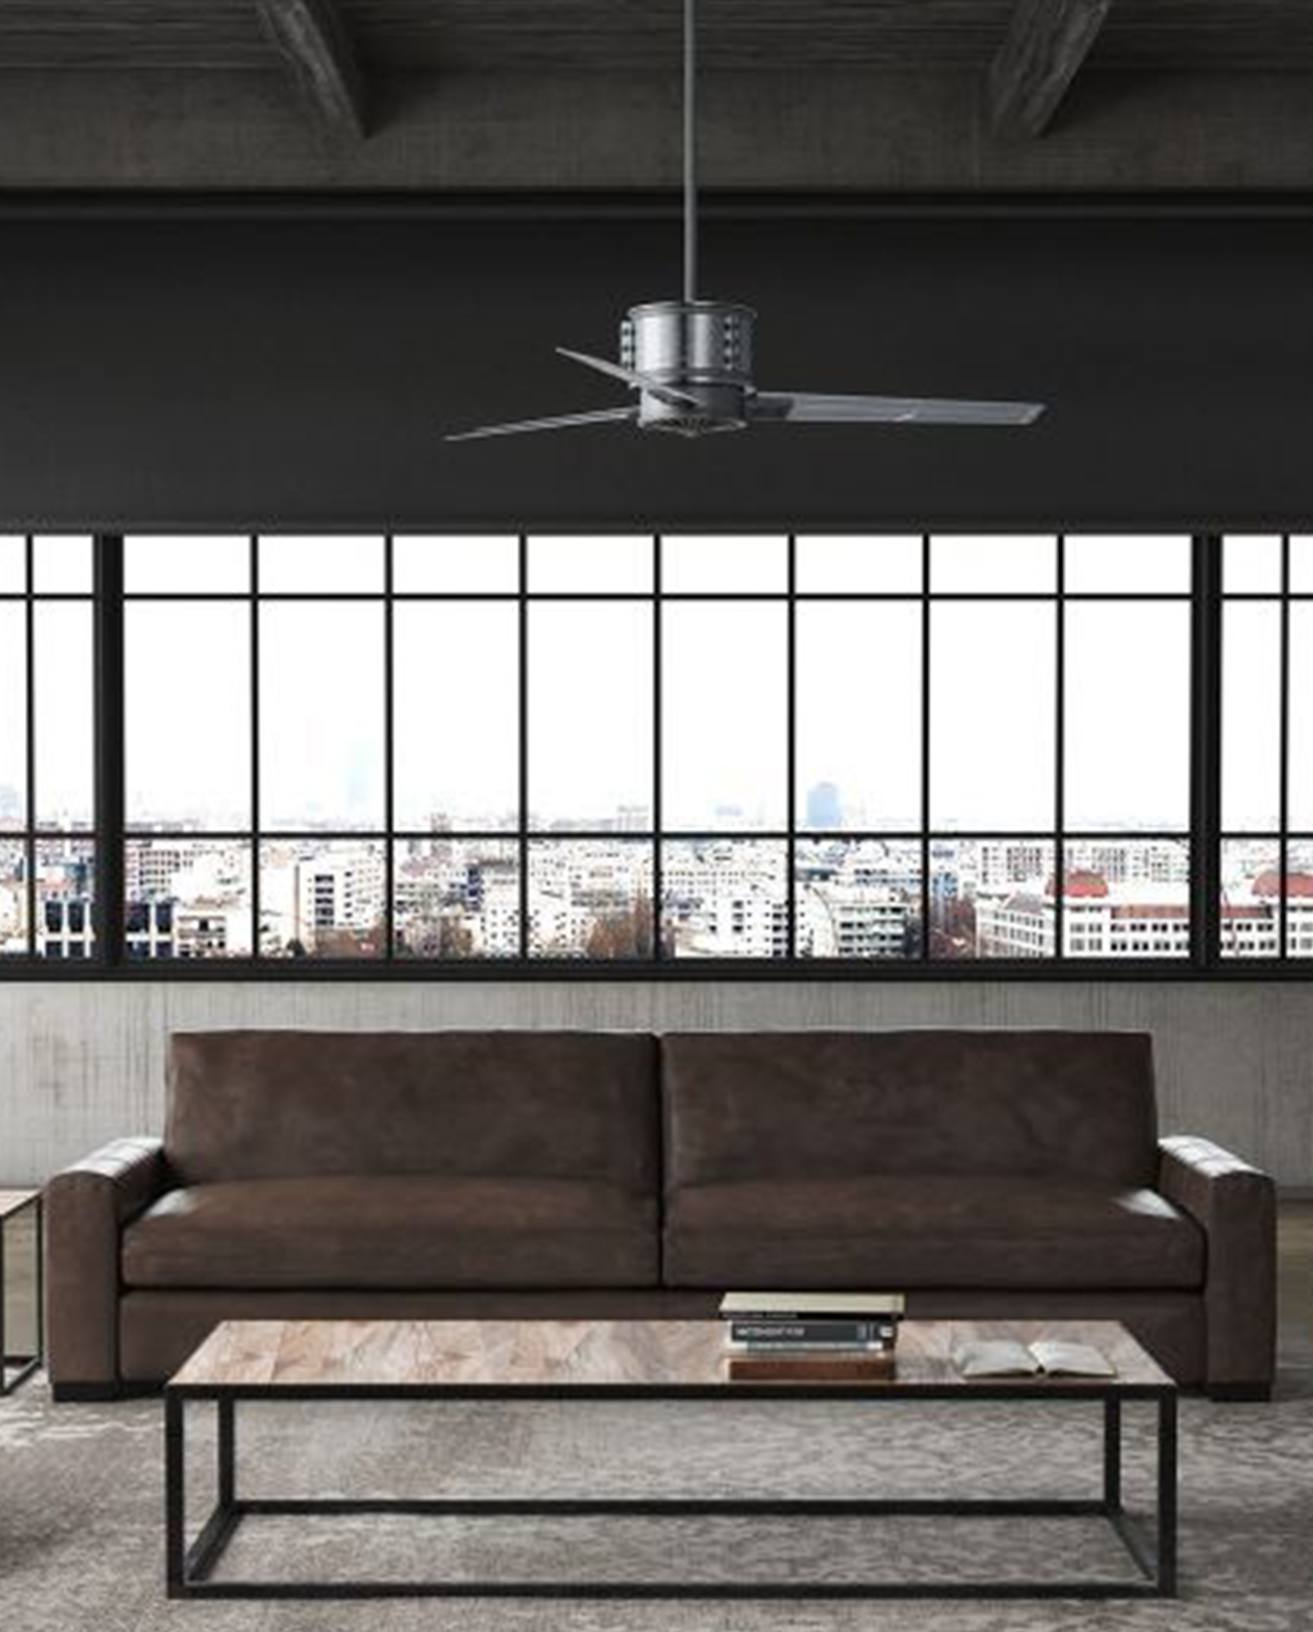 Duluth in an industrial and modern living space